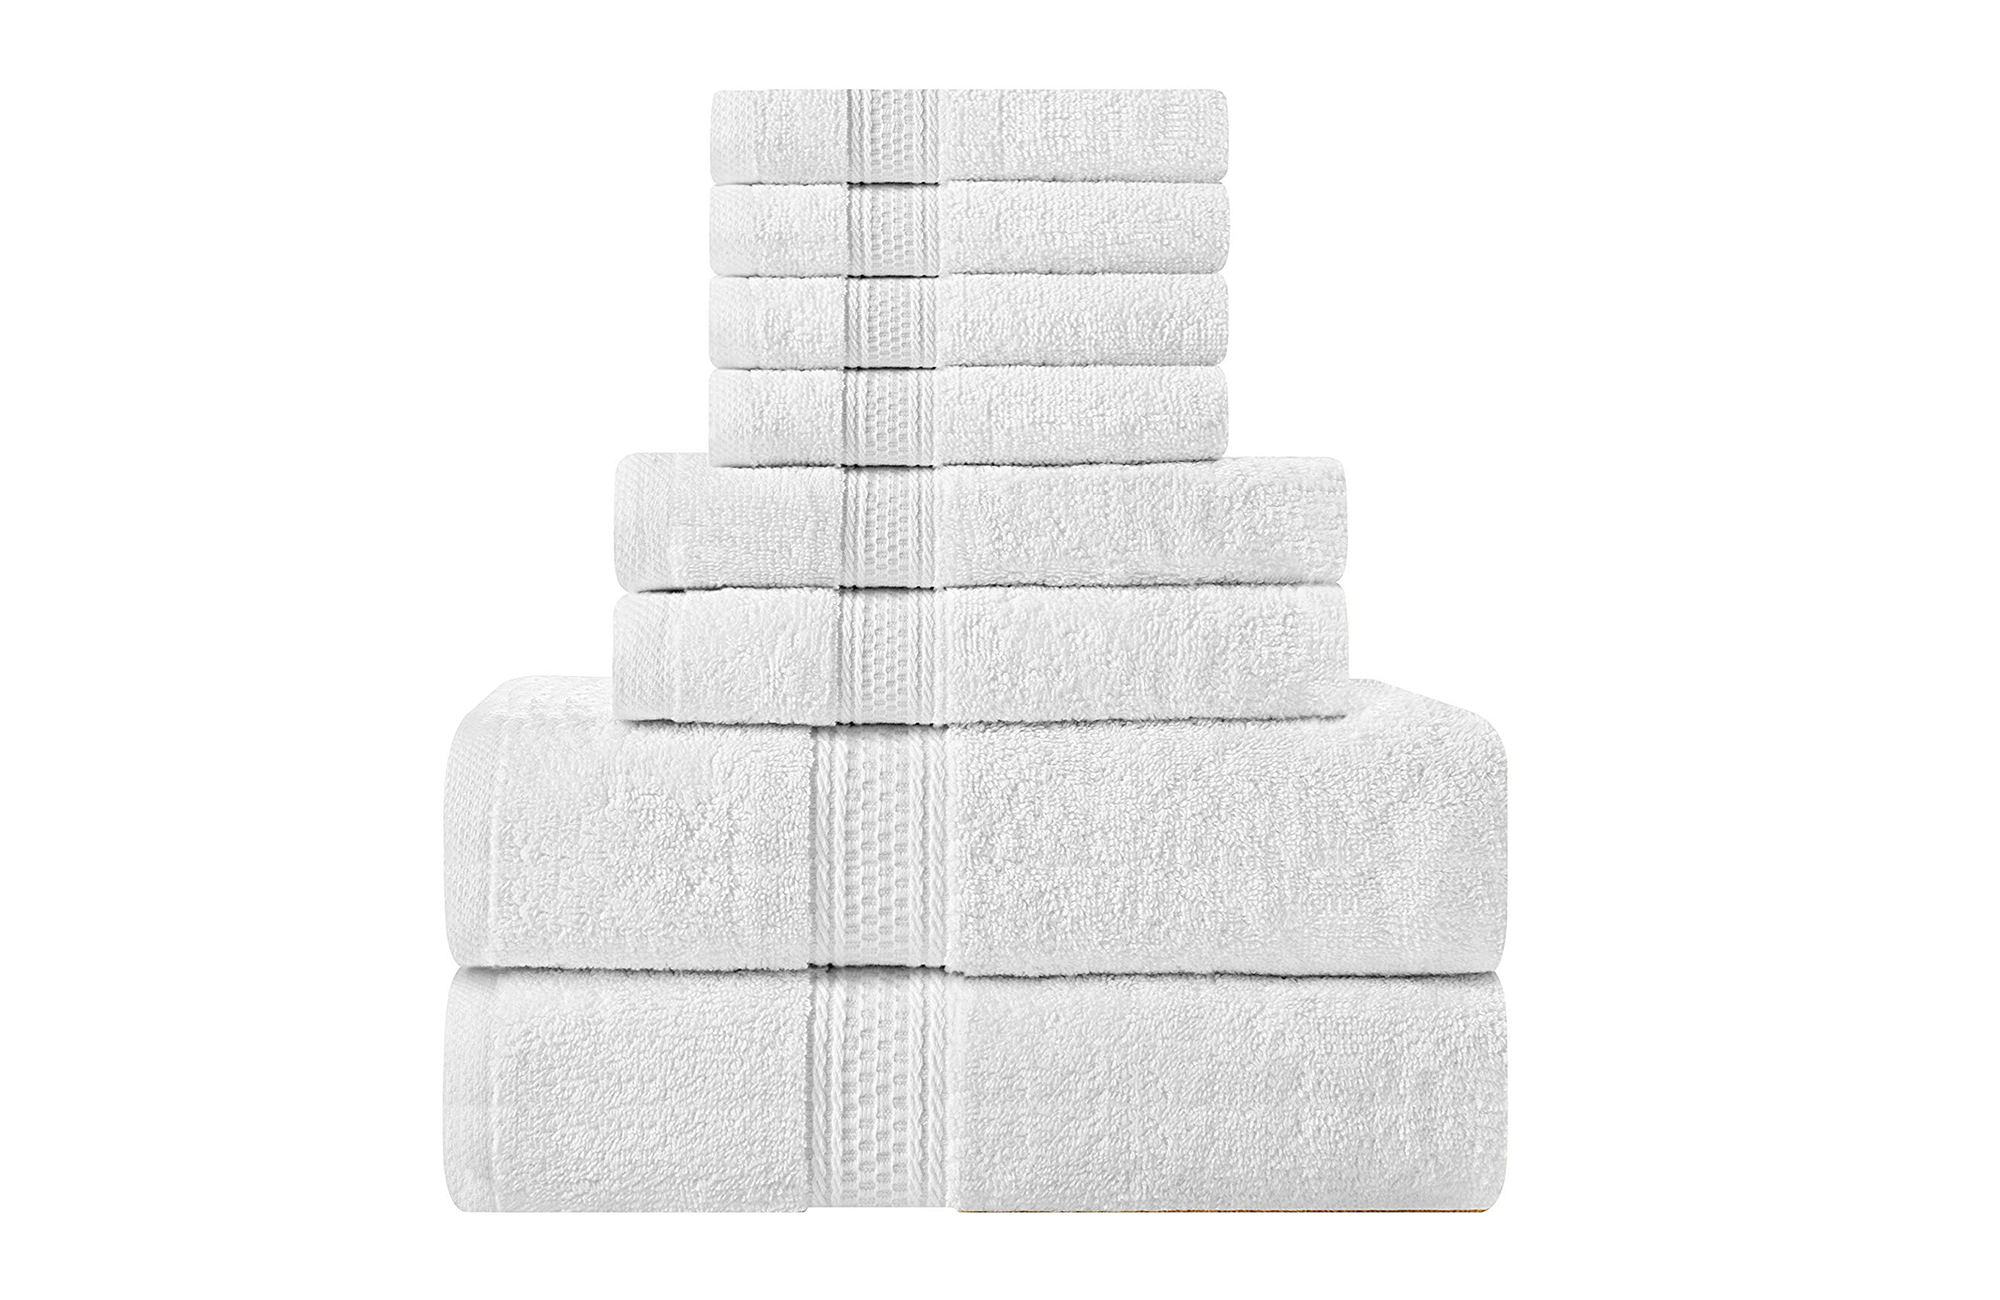 Best Bath Towel Set: Utopia Towels 8-Piece Towel Set